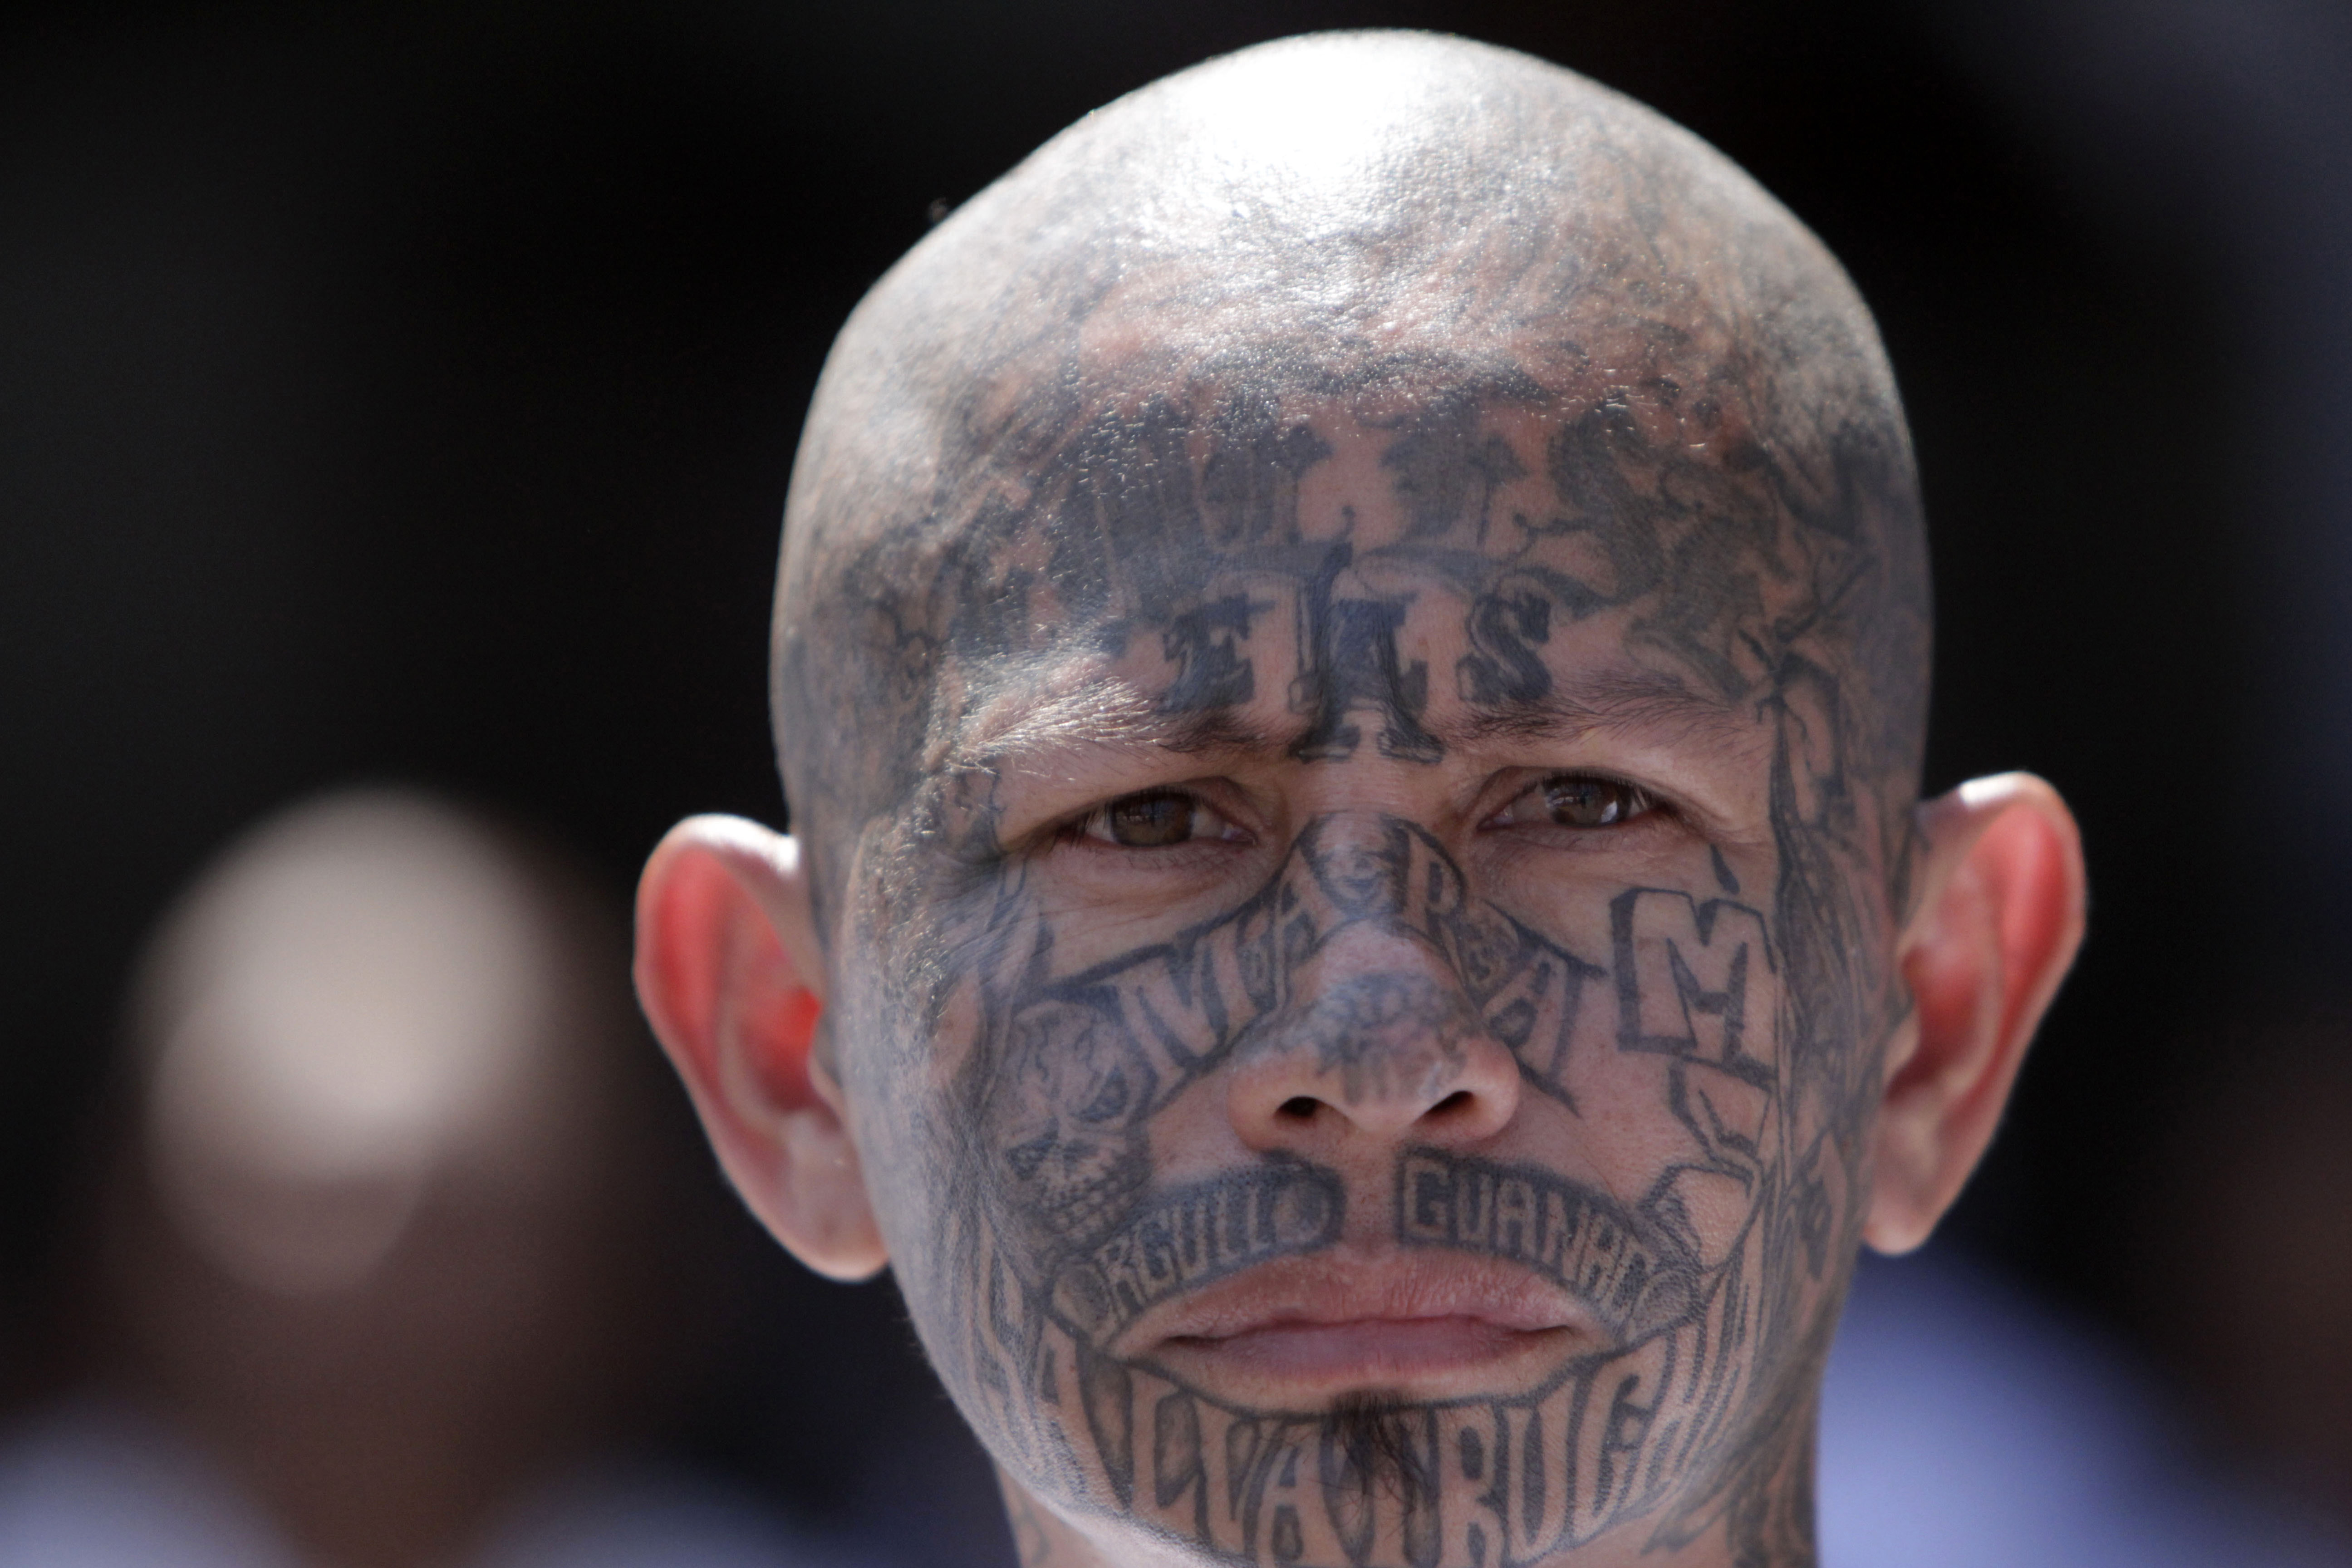 In this March 26, 2012 photo, an inmate belonging to the Mara Salvatrucha or MS-13 gang stands inside the prison in Ciudad Barrios, El Salvador.  Six months after El Salvador brokered an historic truce between two rival gangs to curb the nation's daunting homicide rate, officials are split over whether the truce actually works. The gangs, which also operate in Guatemala and Honduras, are seeking truce talks in those countries as well. (AP Photo/Luis Romero)